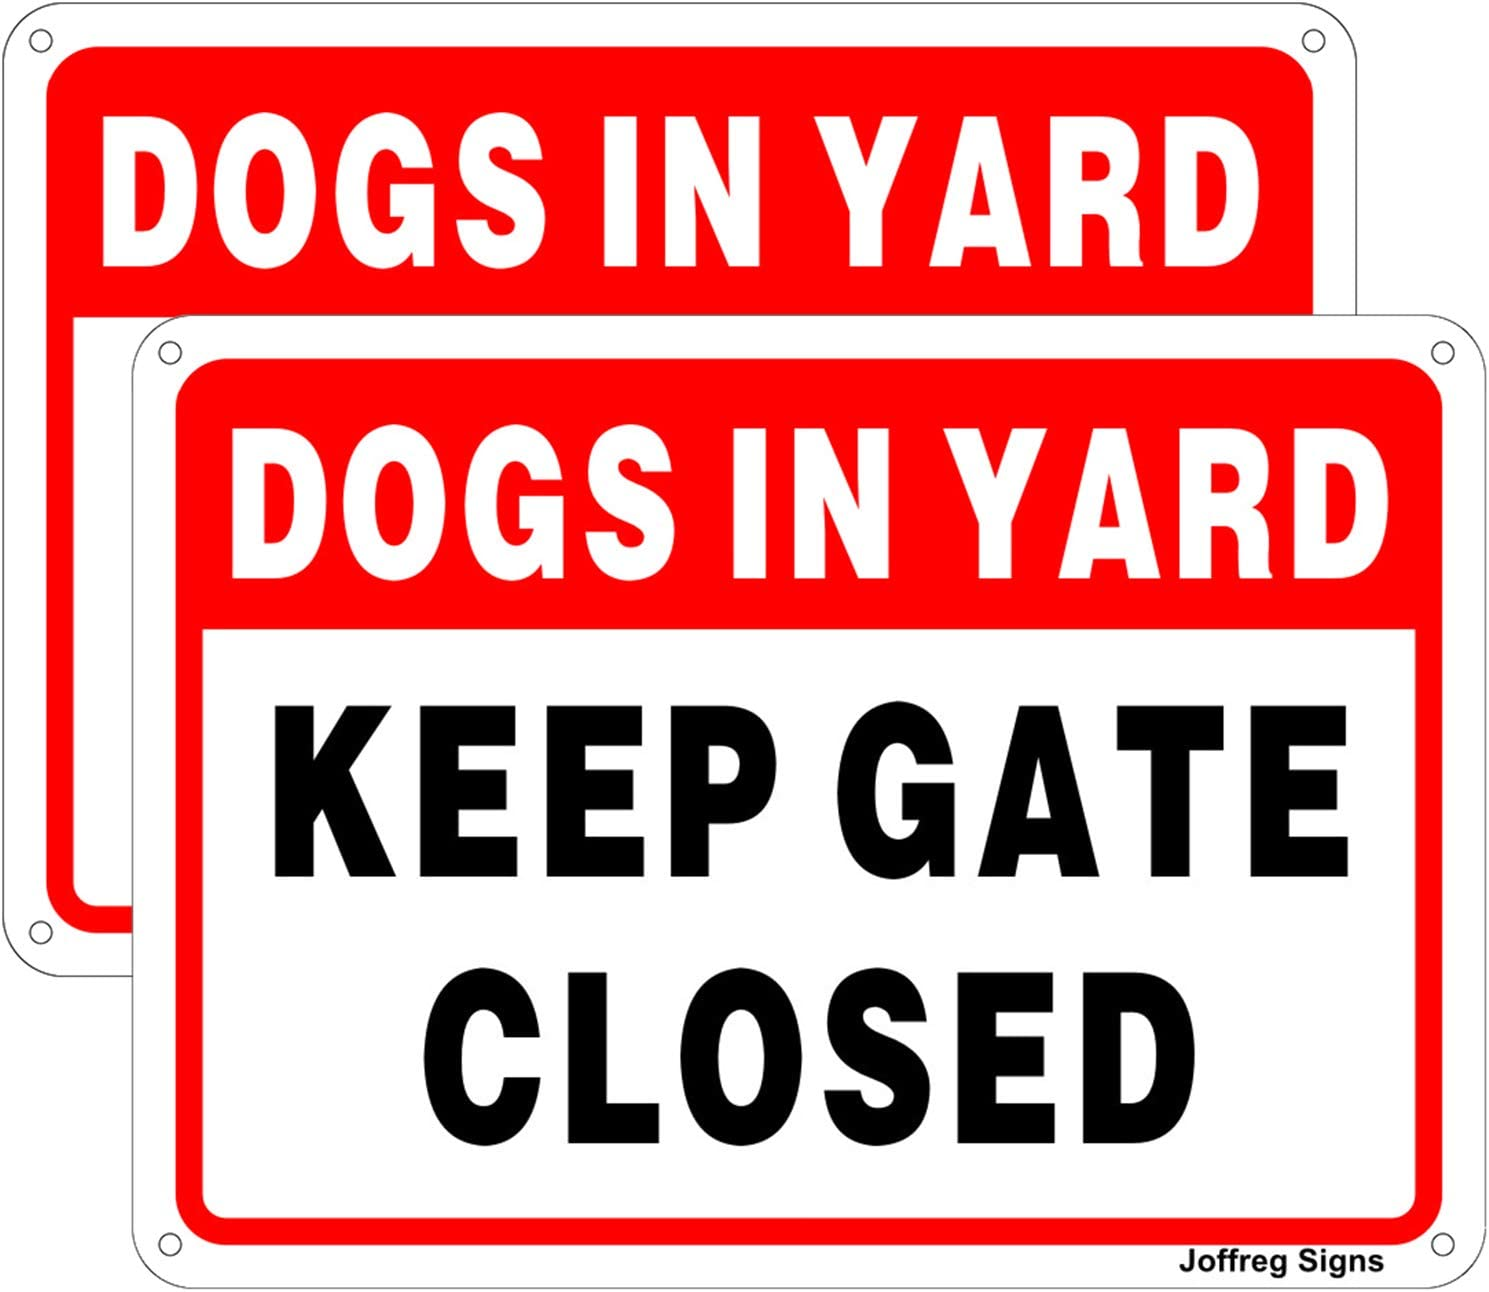 Joffreg 2 Pack Keep Gate Closed,Dogs in Yard Sign,10 x 7 Inches,Reflective Aluminum